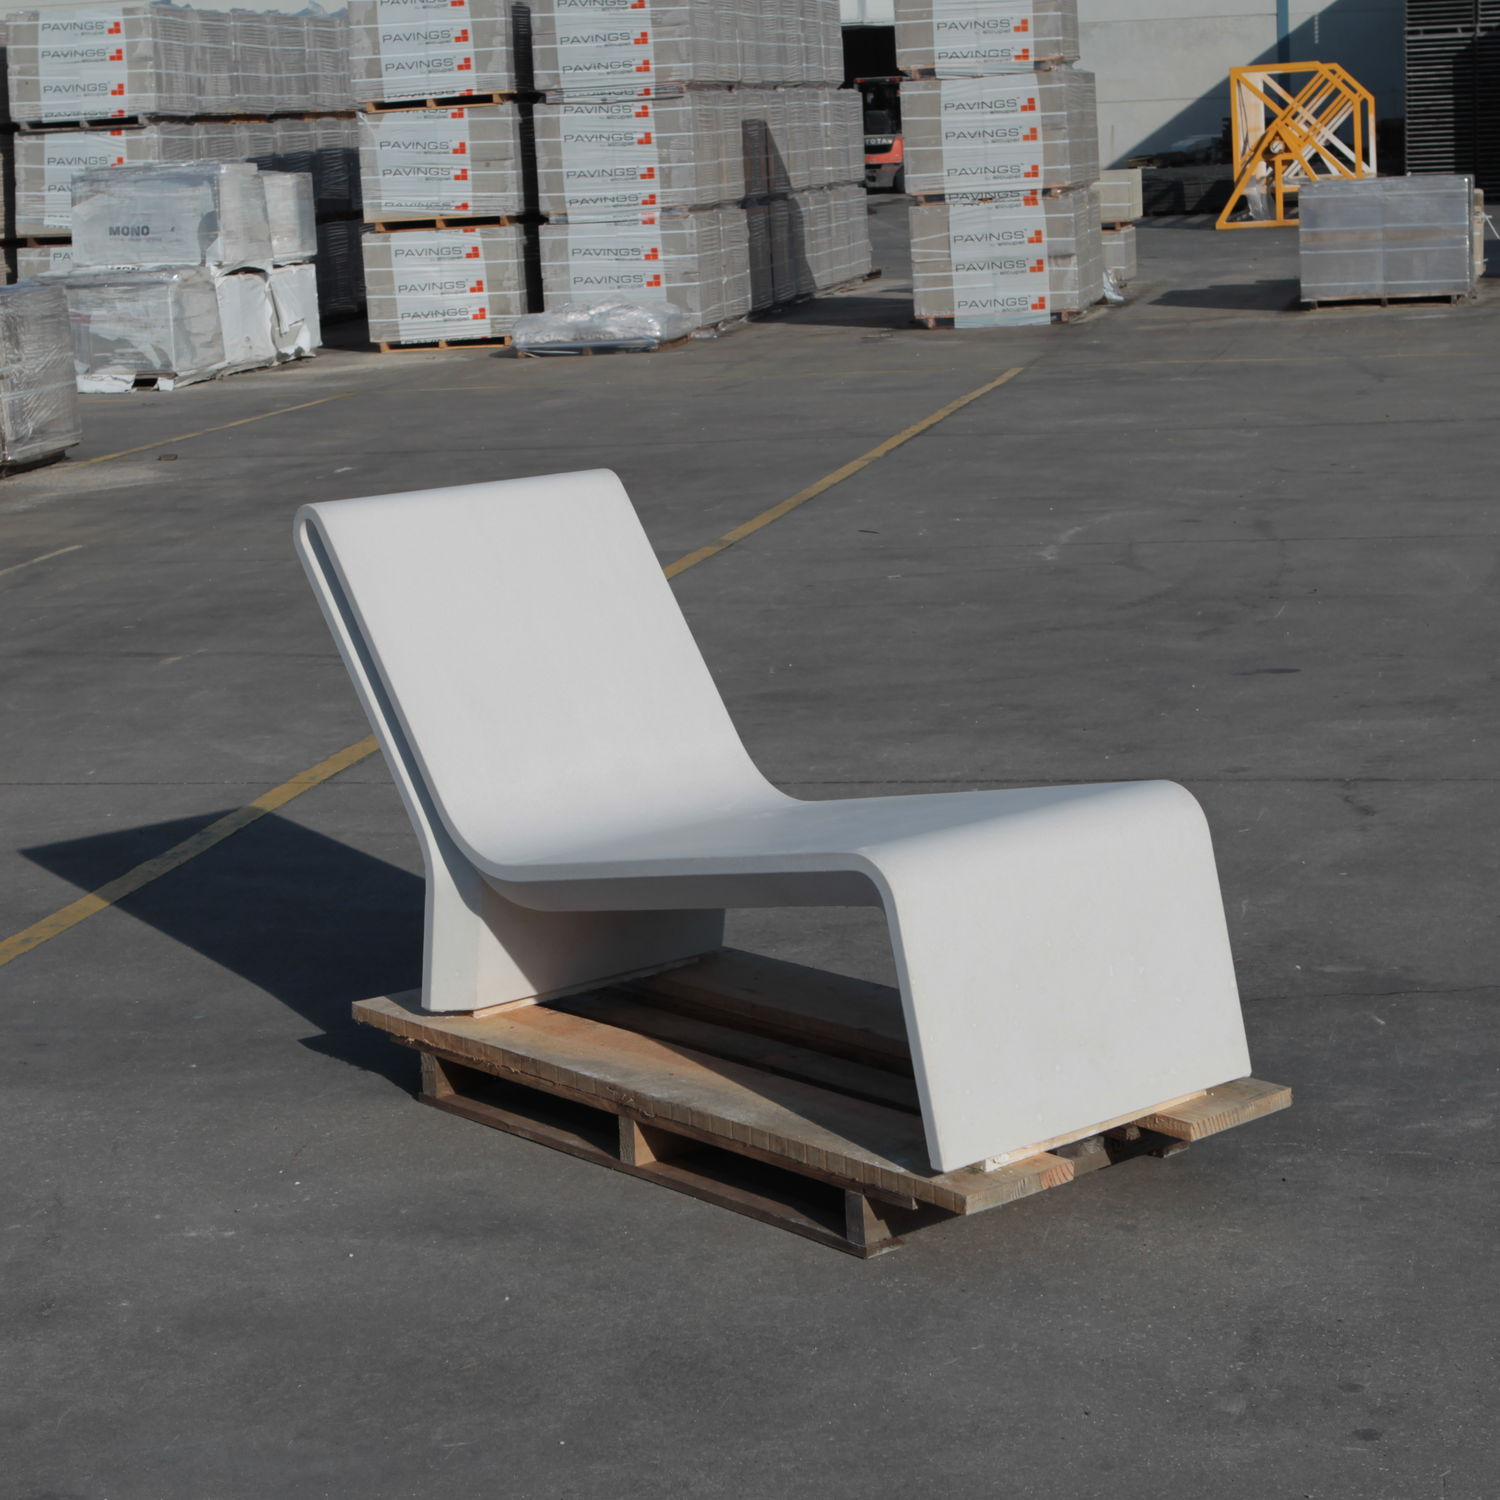 Contemporary Chaise Longue / Concrete / Outdoor / For Public Areas   AR  PURO By Daniel Caramelo